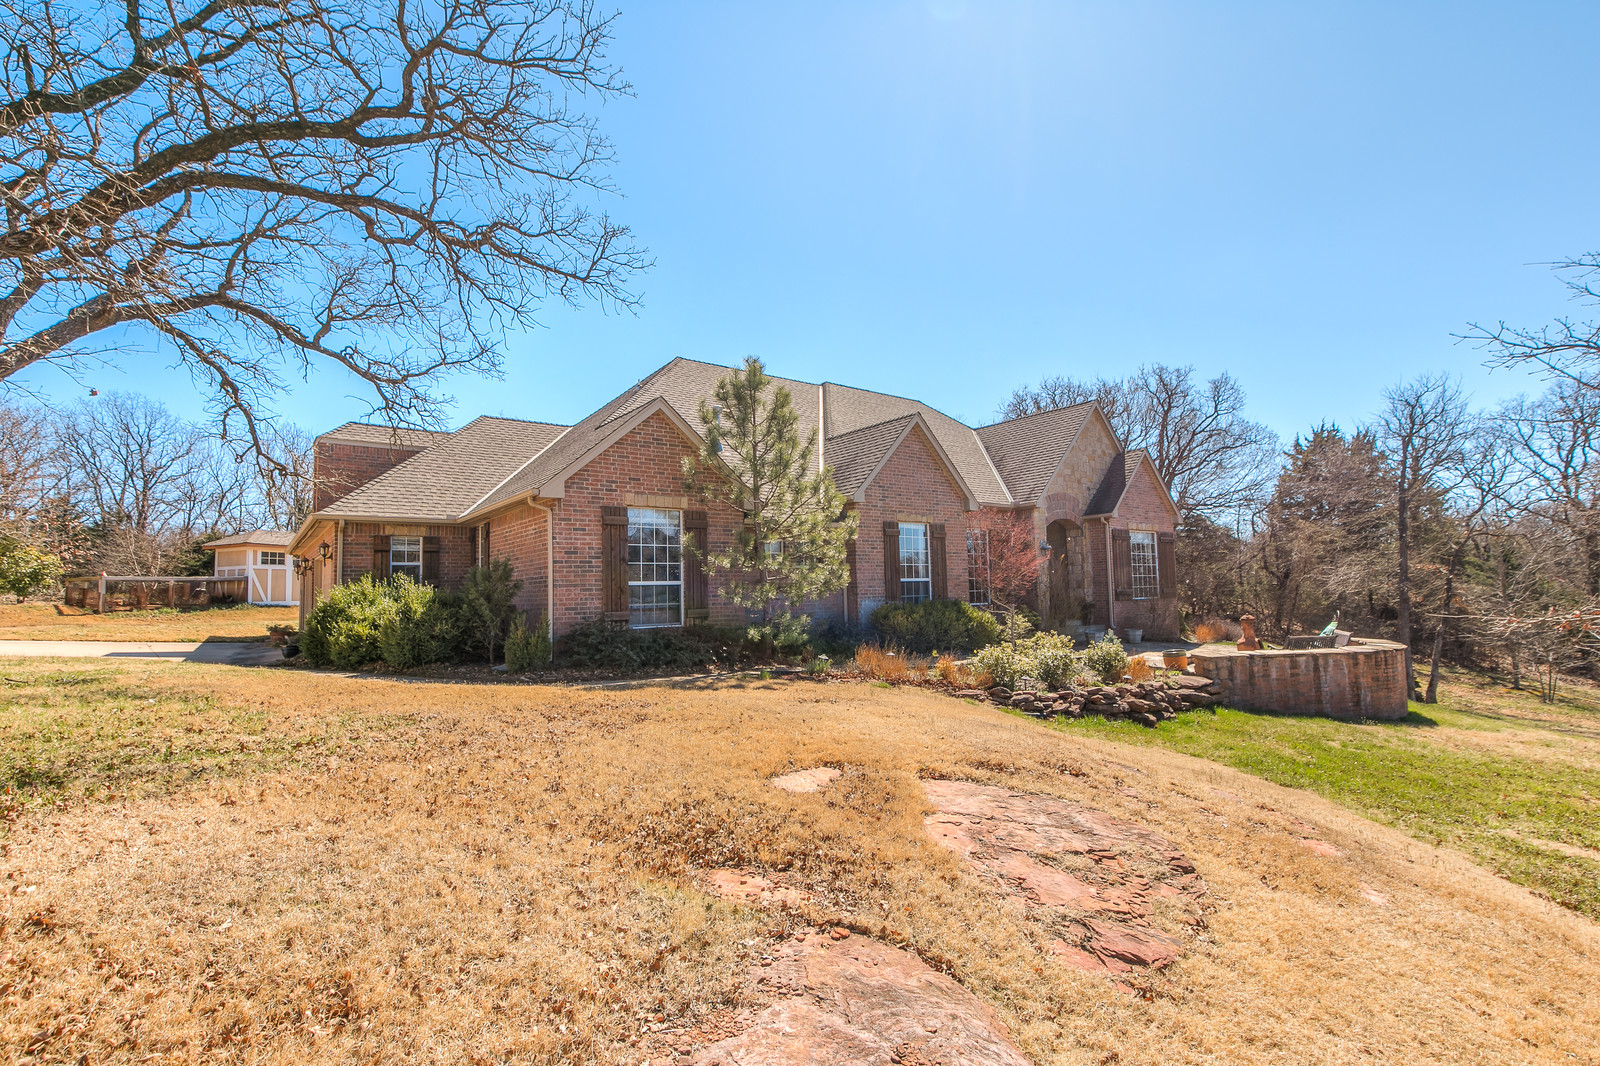 Single Family Homes for Sale at 4504 Shadow Creek Drive, Edmond, Ok, 73034 4504 Shadow Creek Drive Edmond, Oklahoma 73034 United States